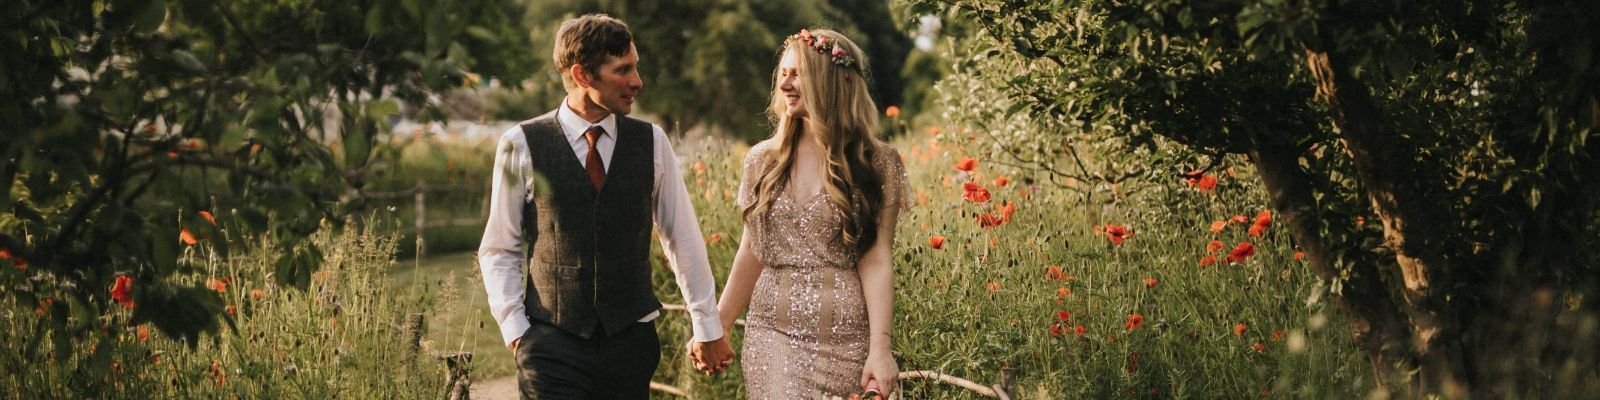 https://www.airfield.ie/wp-content/uploads/2019/05/Bride-and-Groom-in-the-wildflower-meadow-at-Airfield-Estate-min.jpg